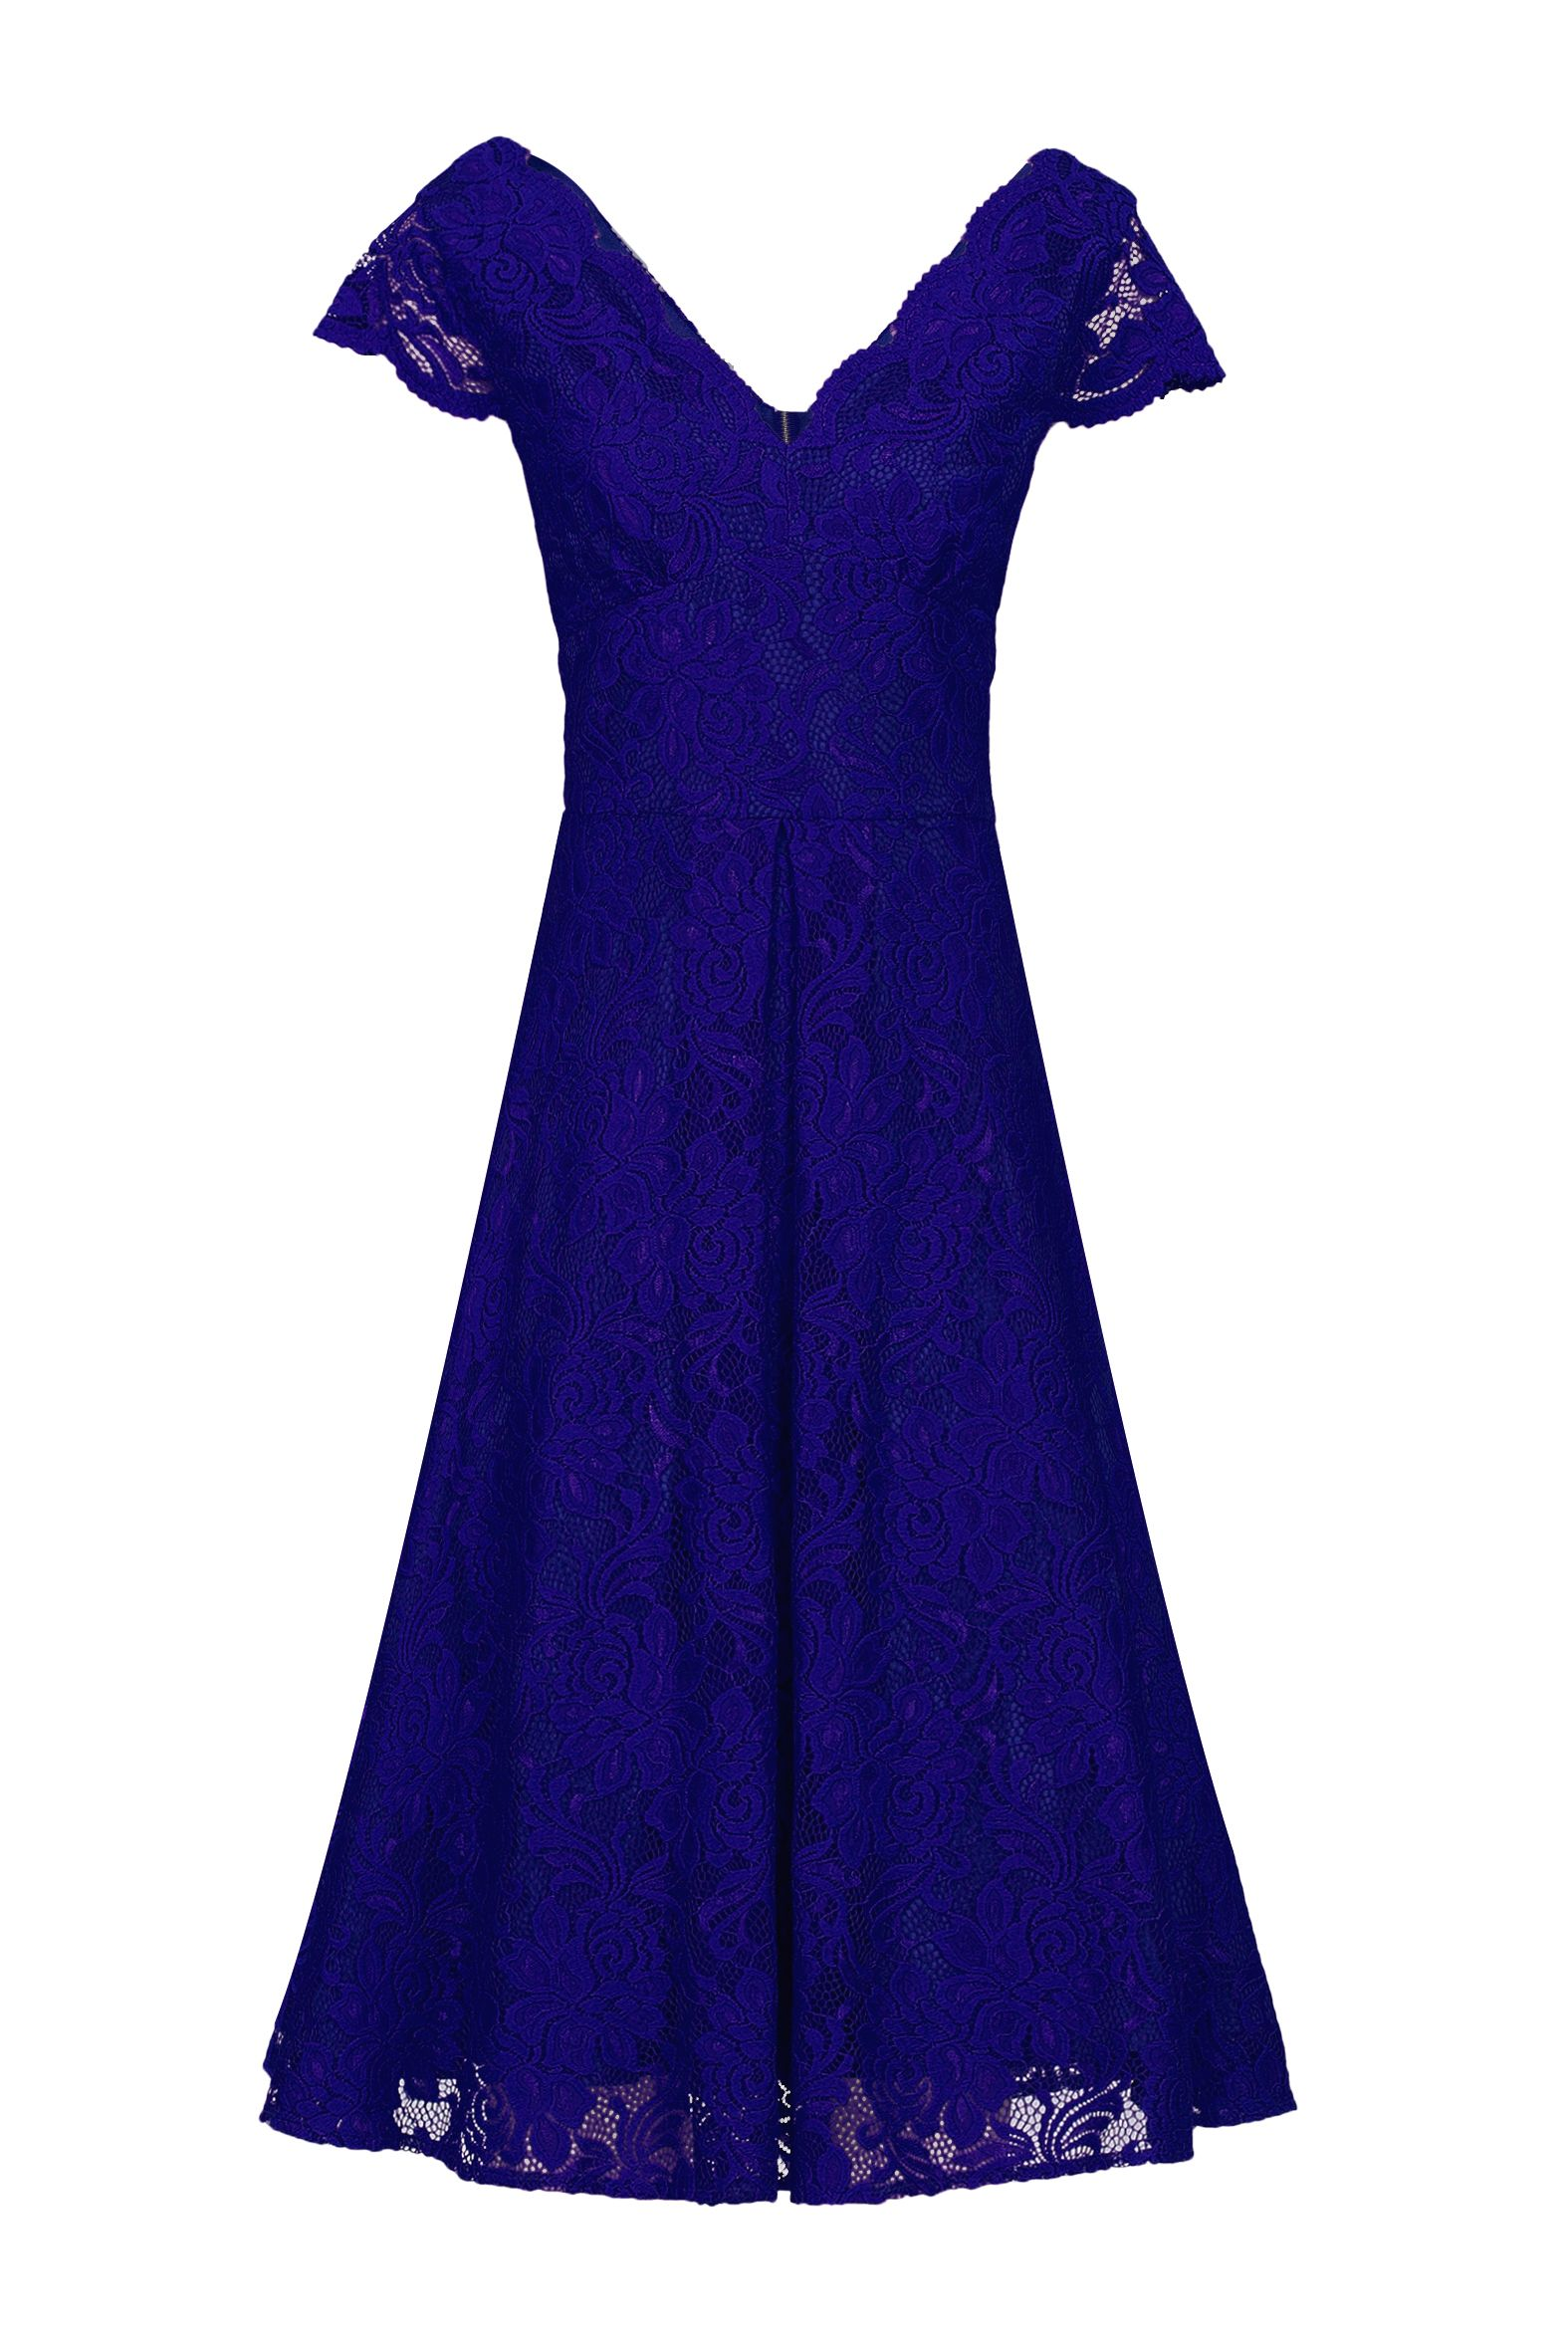 Jolie Moi Cap Sleeve Scalloped Lace Dress, Blue